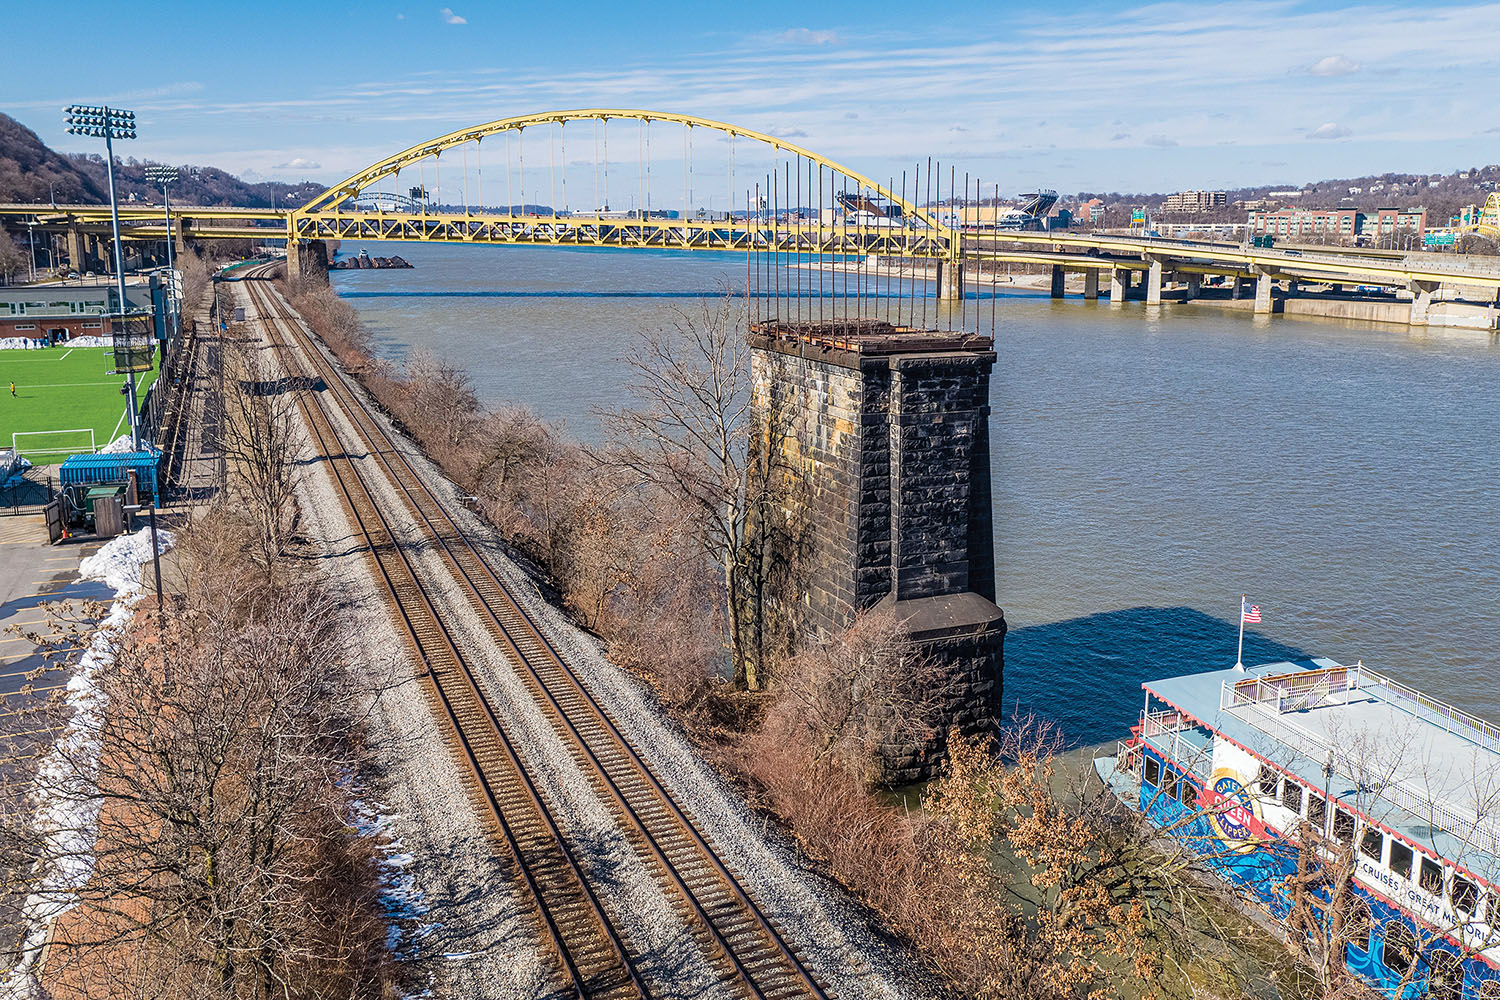 Today, all that is left of the Wabash Bridge are two 90-foot stone piers topped with flagpoles. They are sunk along both the northern and southern shores of the Monongahela River. (Photo courtesy of Hanna Langholz Wilson Ellis)